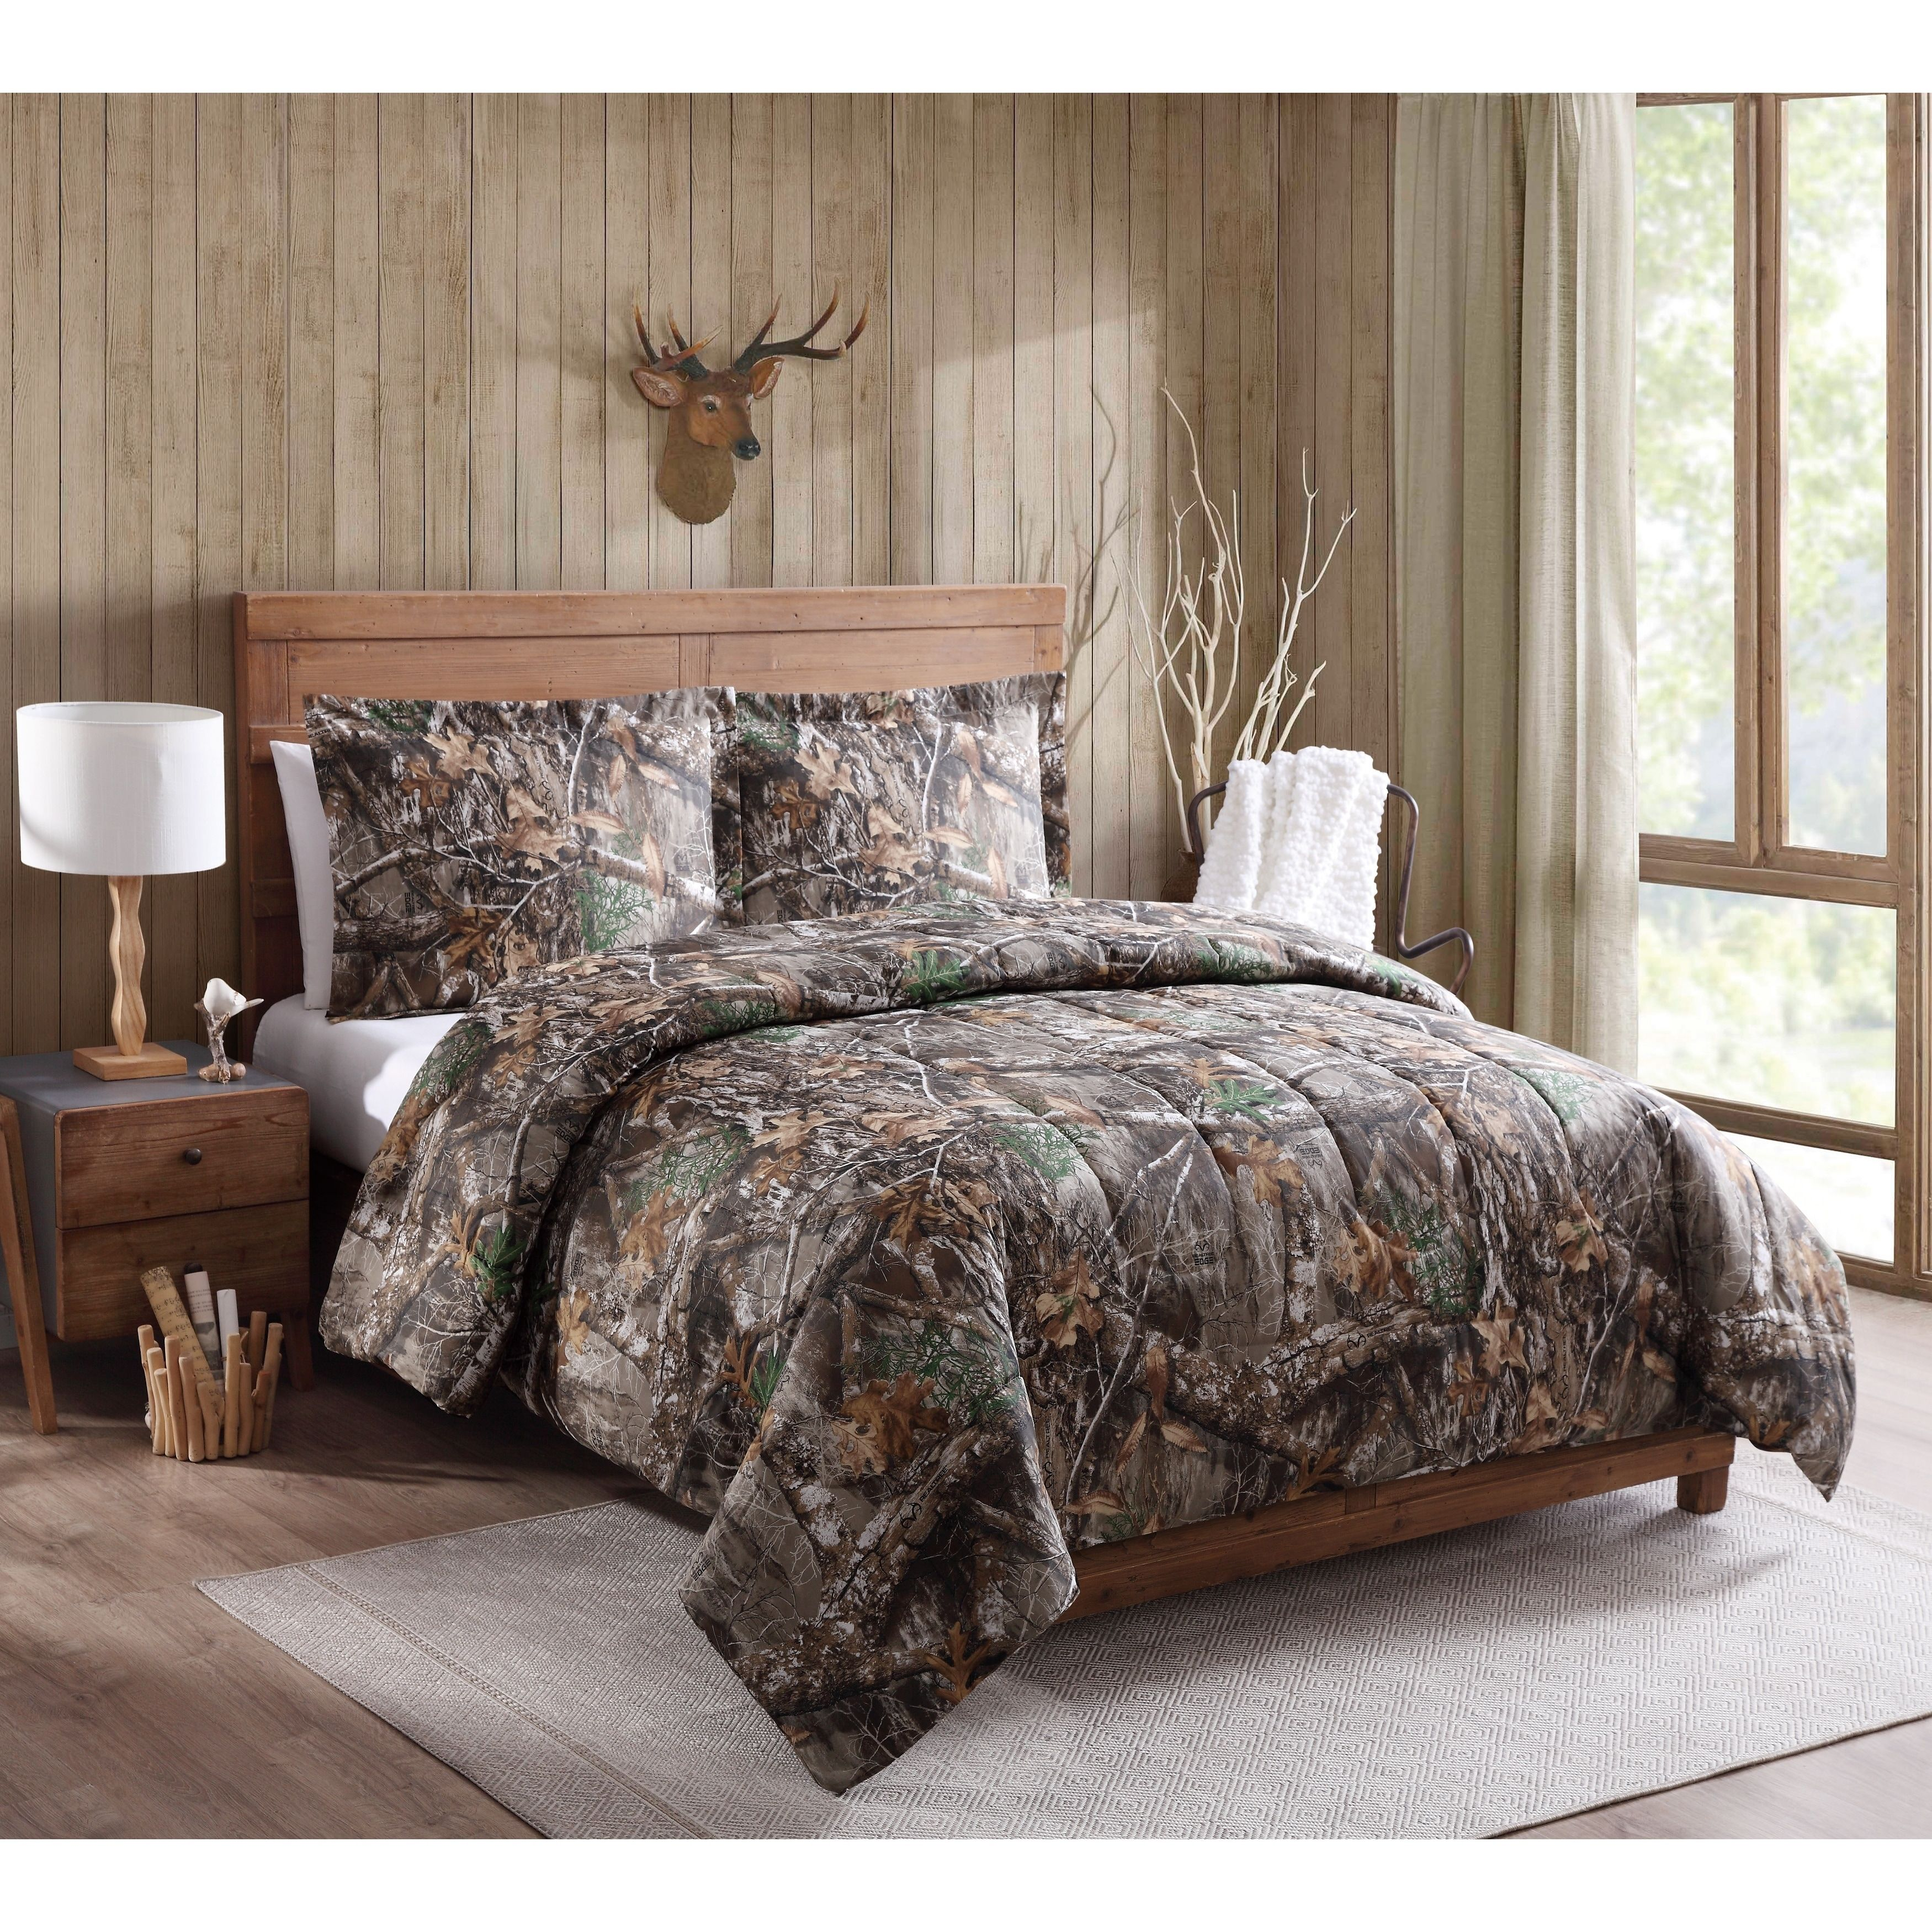 Image result for realtree edge bedding Whatus New Pinterest